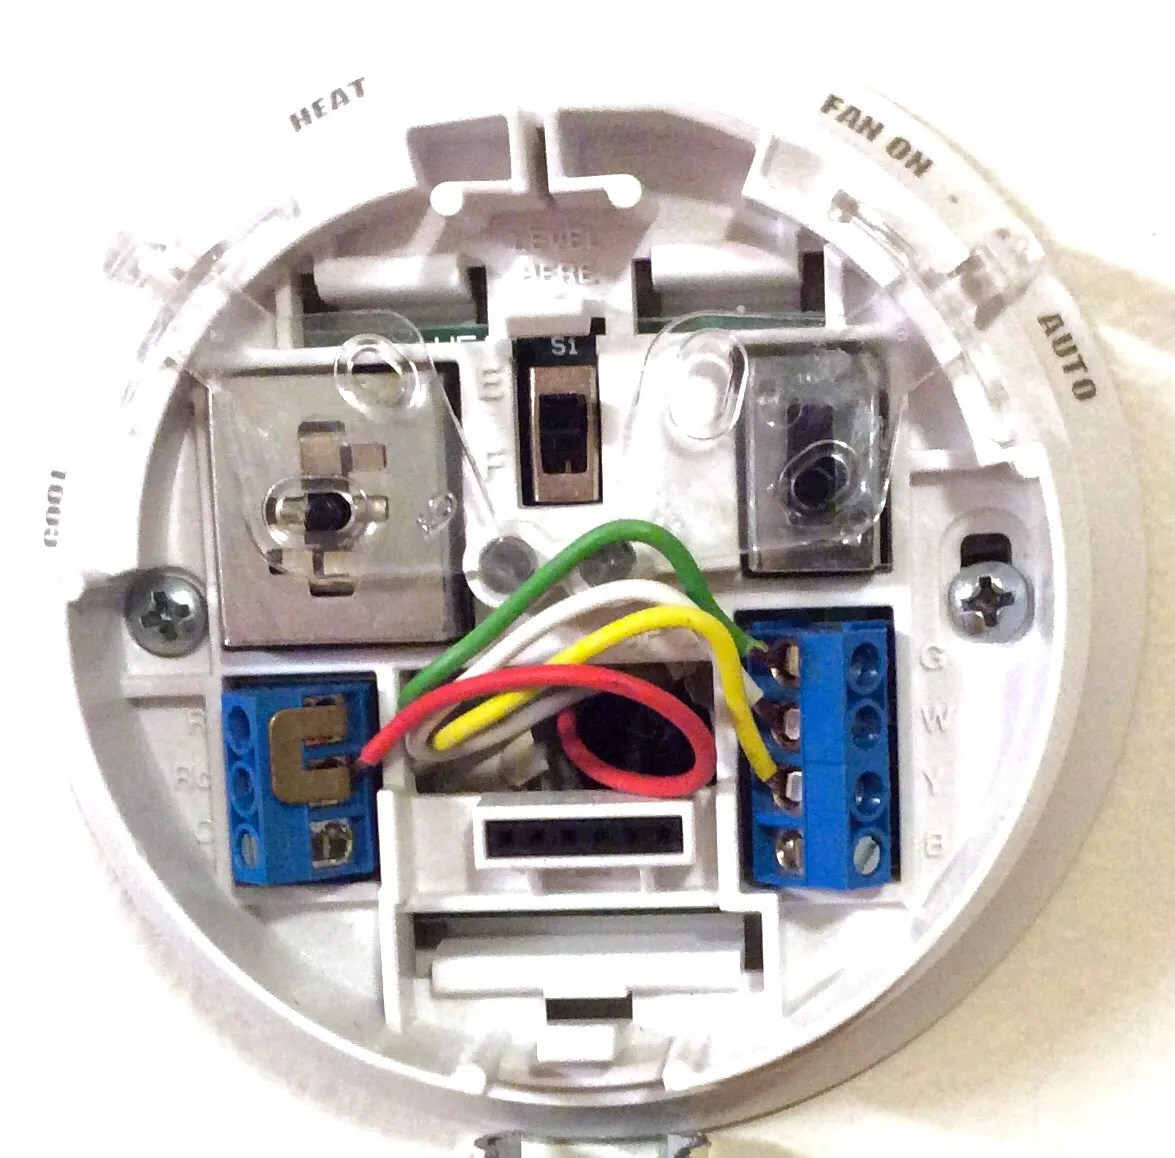 honeywell thermostat wiring color code [ 1175 x 1158 Pixel ]